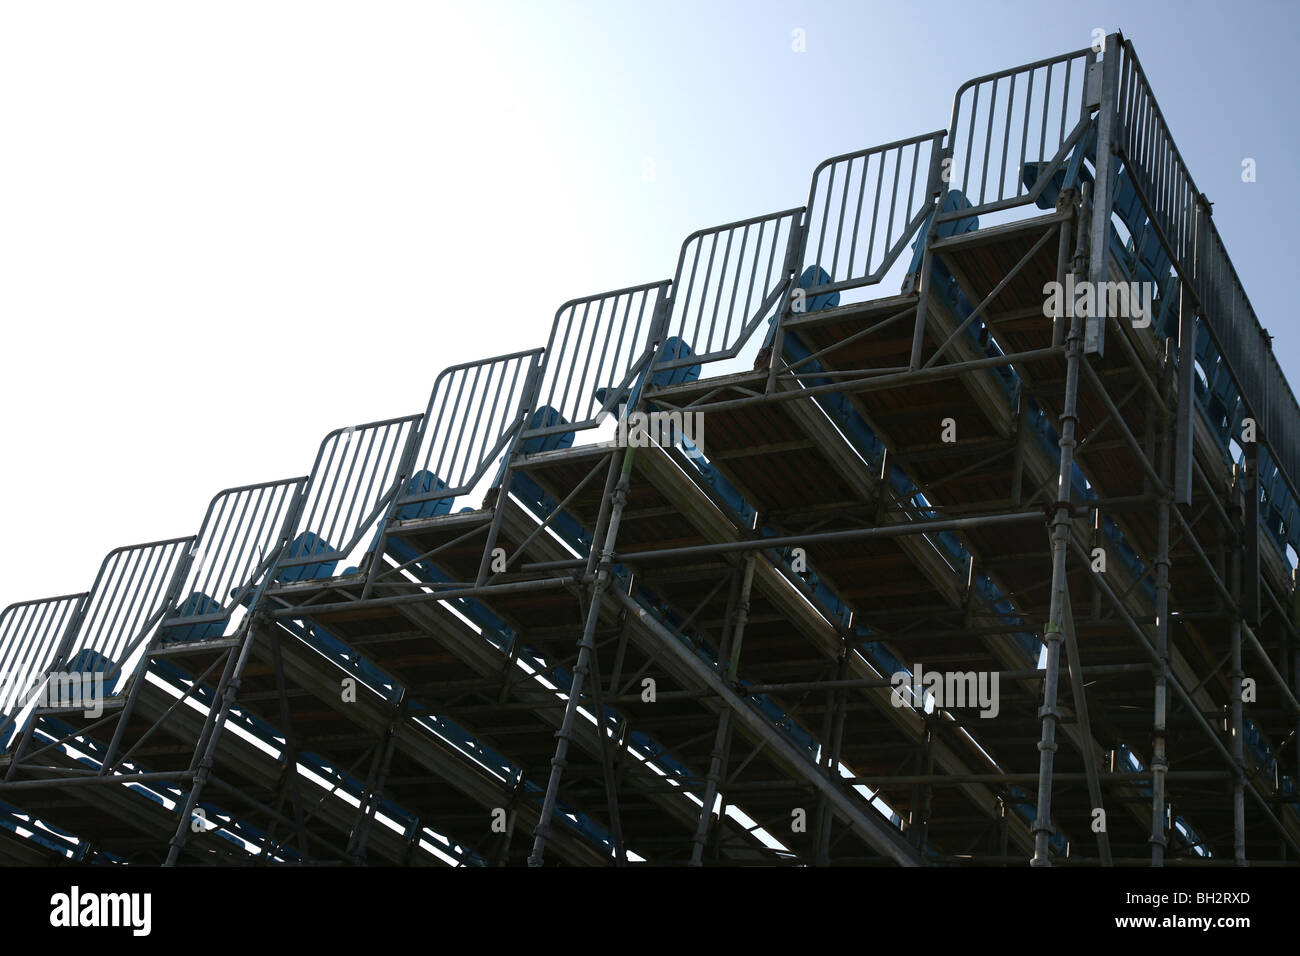 Temporary Seating Made Scaffolding Stock Photos & Temporary